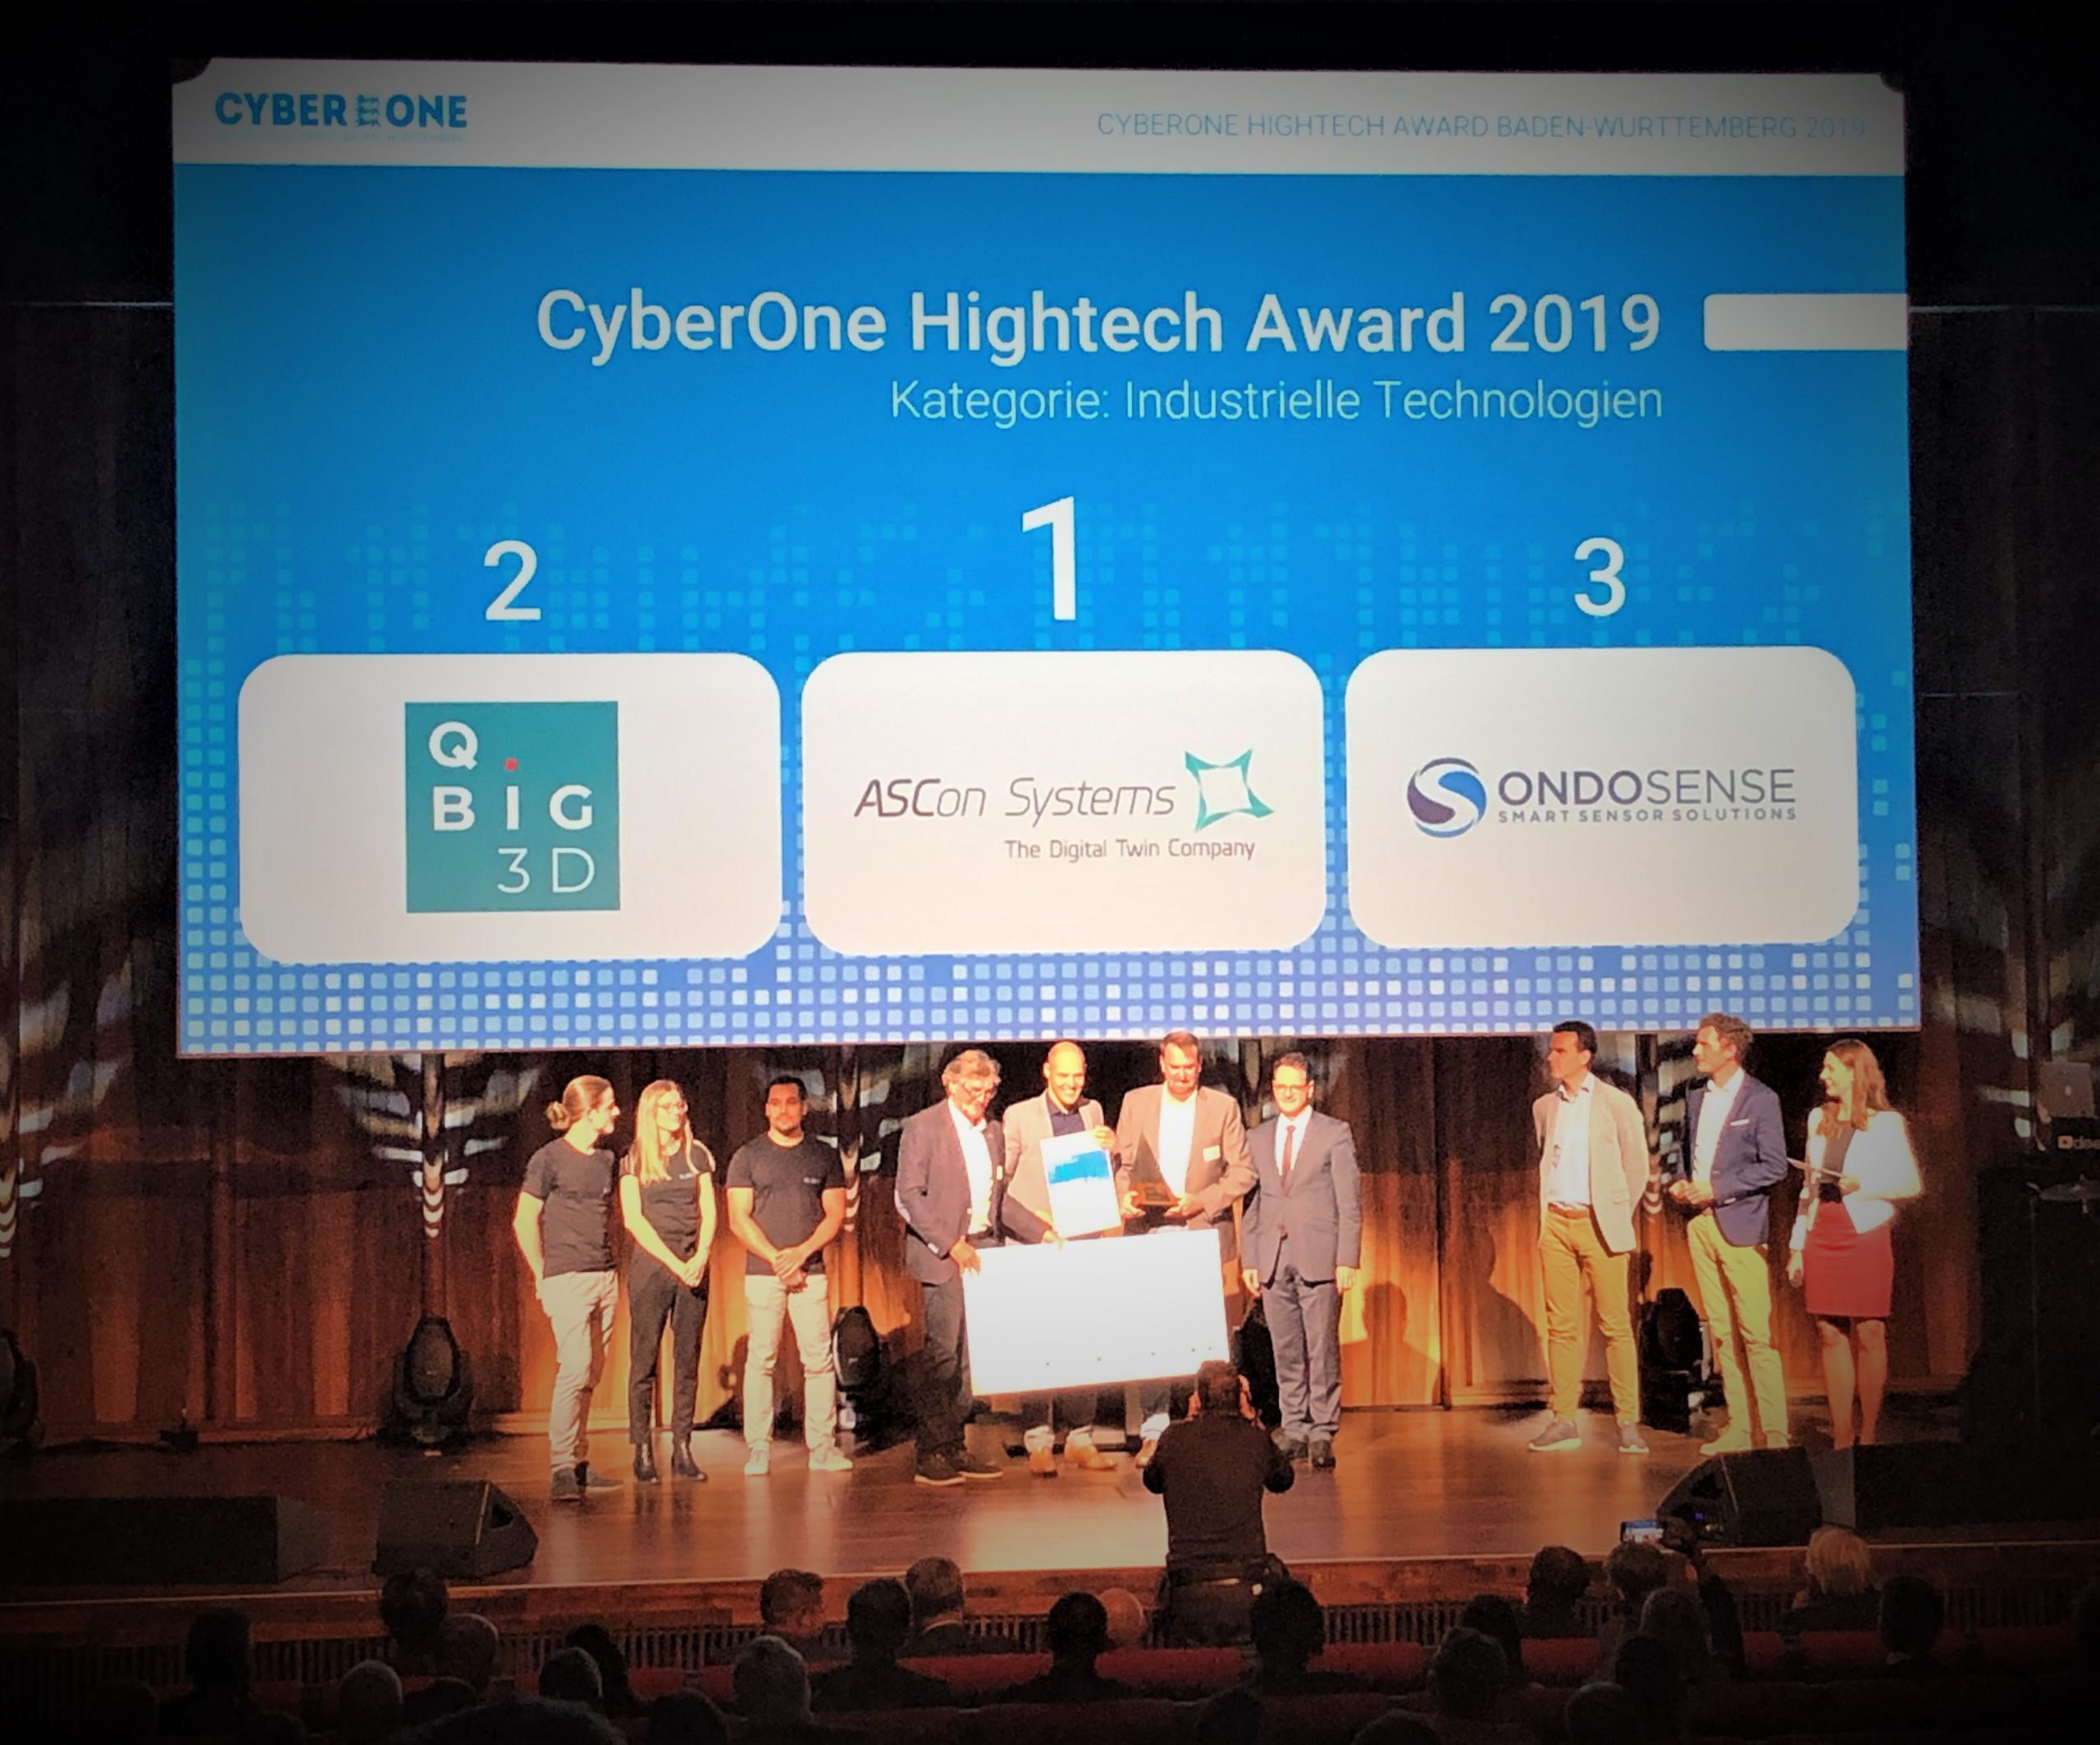 ASCon Systems is winner of the CyberOne Hightech Award 2019